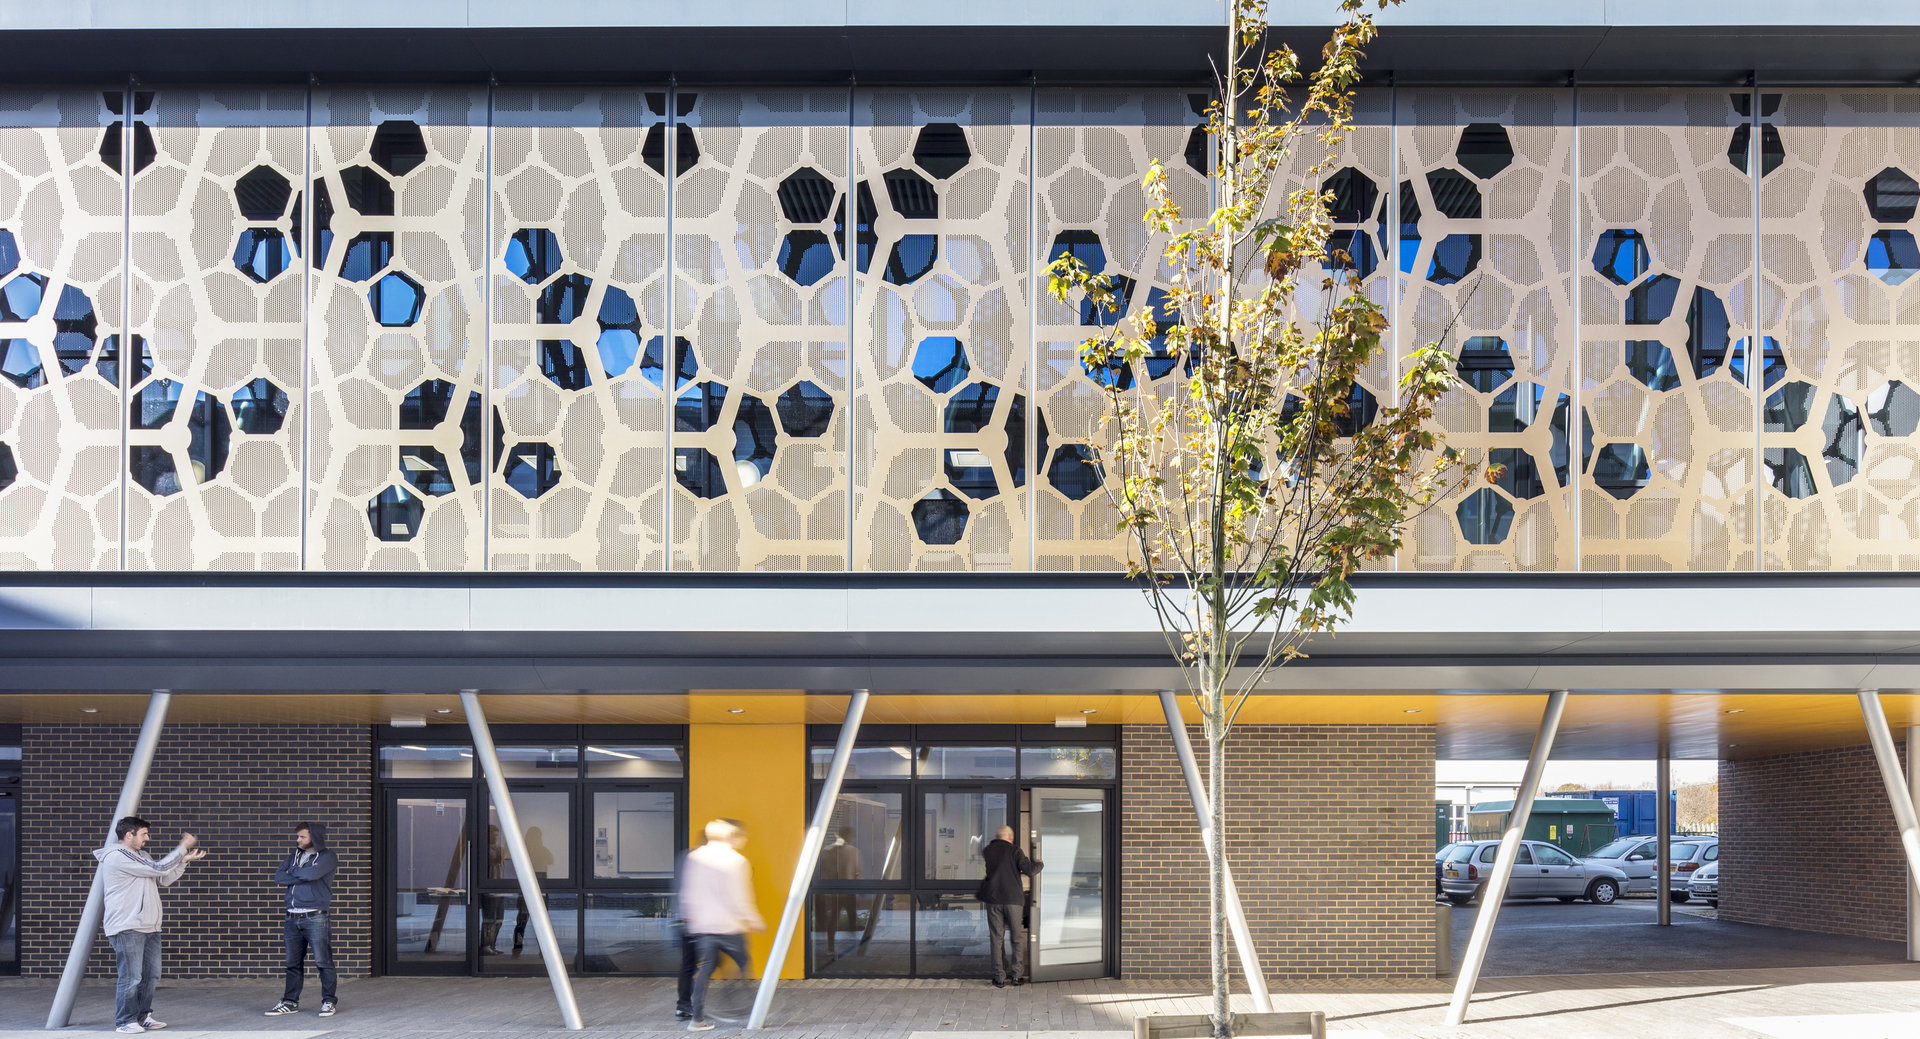 Campus buildings shortlisted for prestigious award